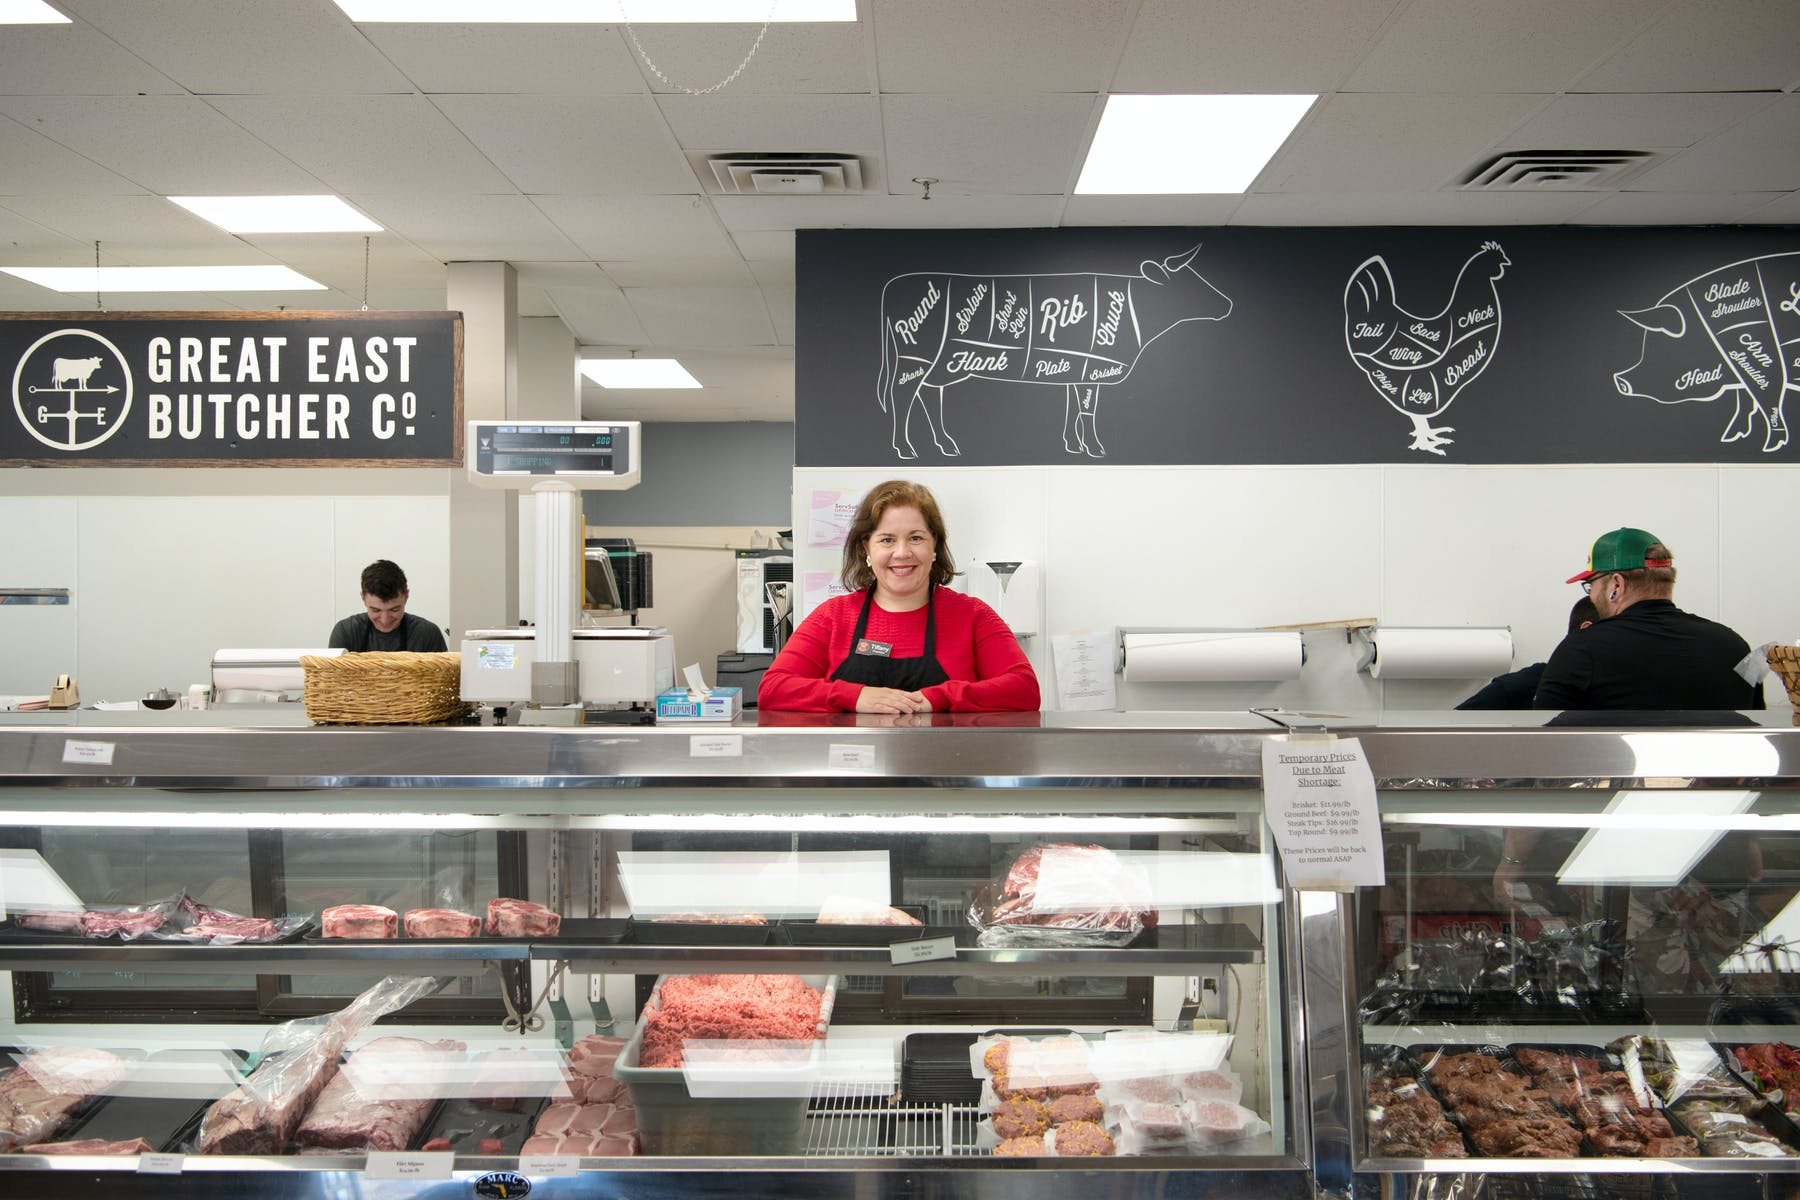 A professional standing behind the deli of burger provider The Great East Butcher in Portland, ME